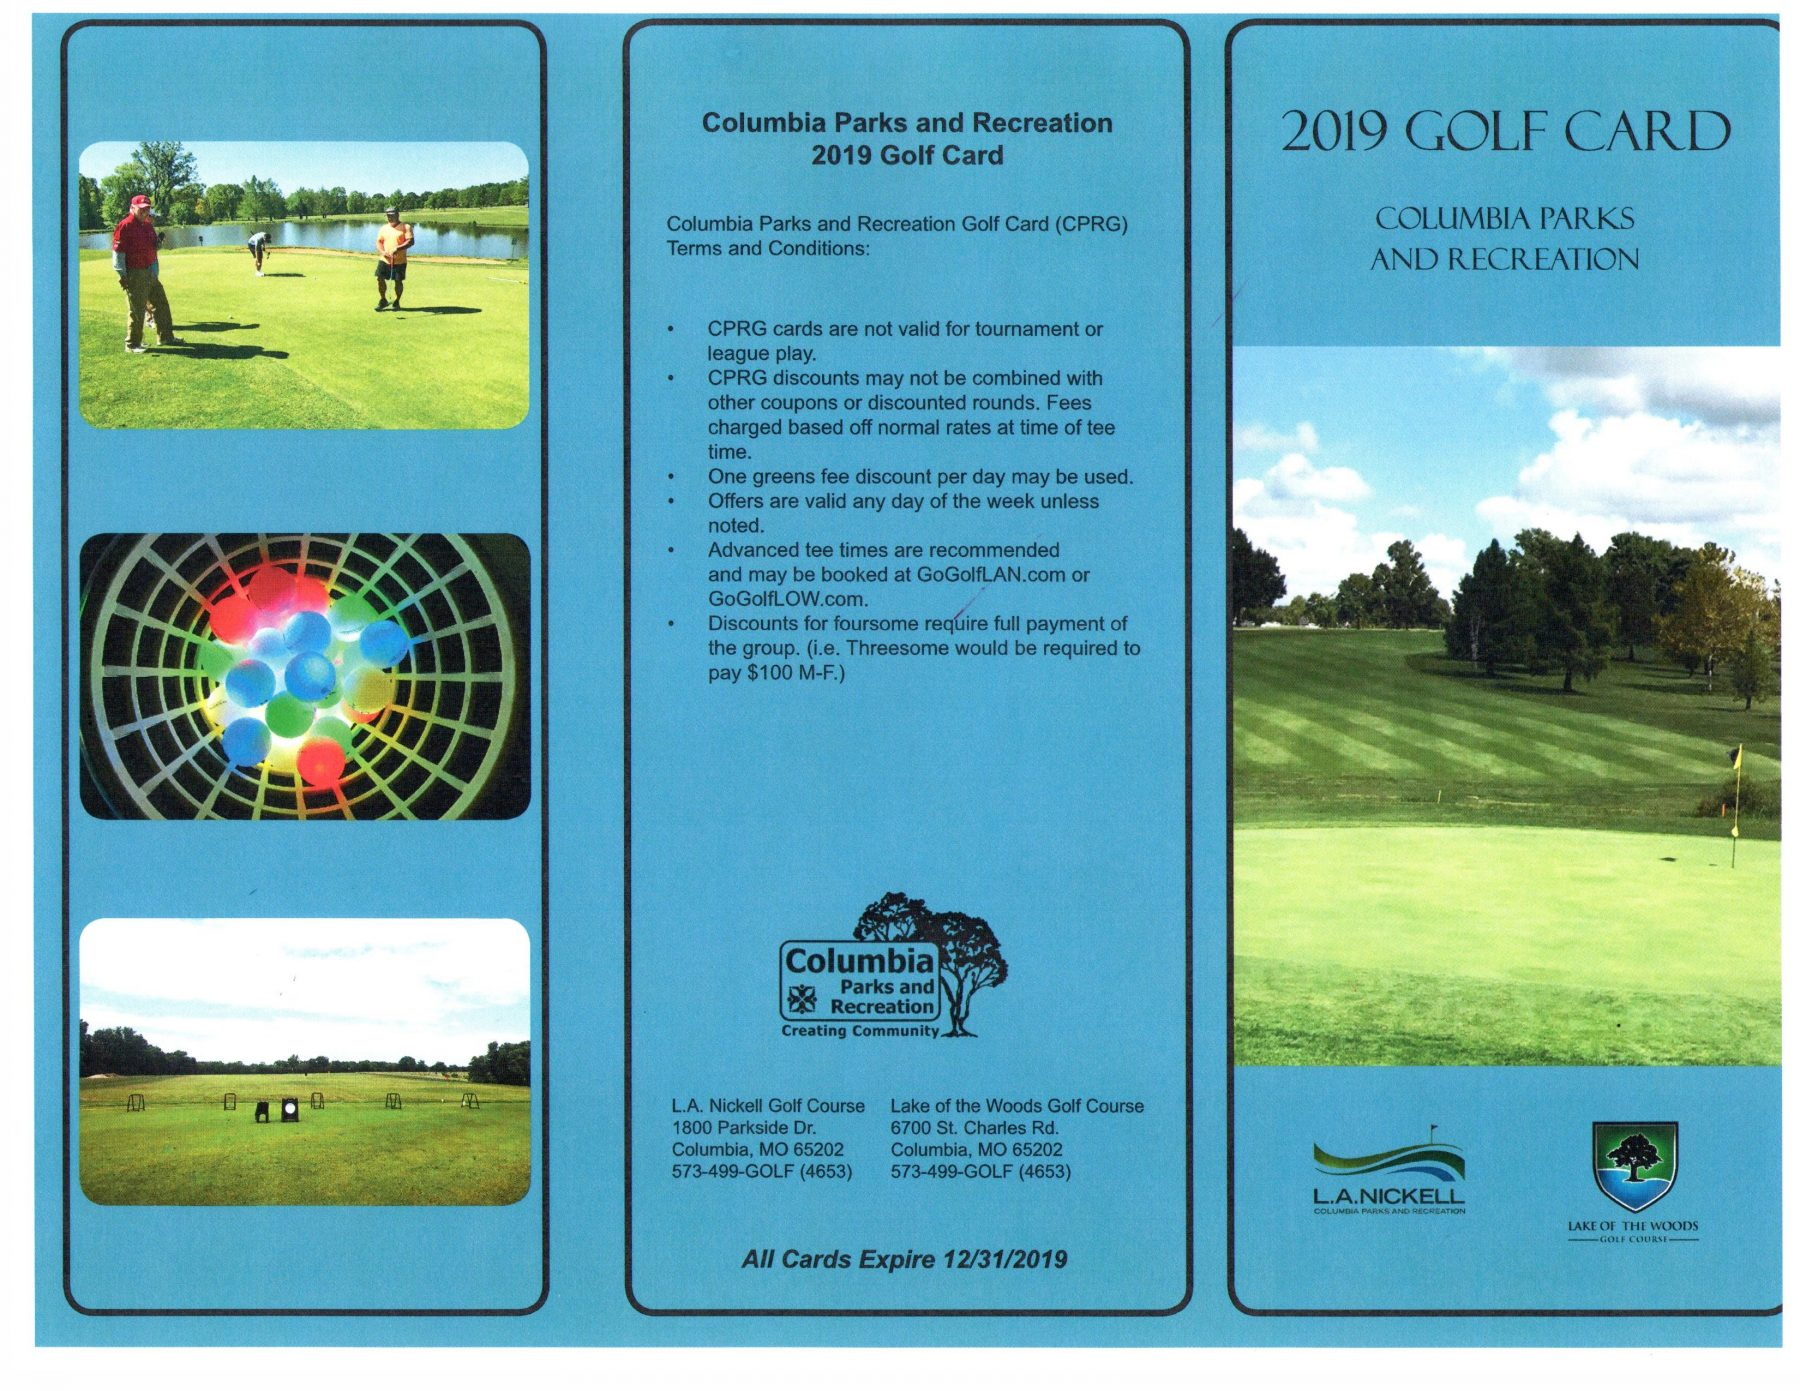 2019 COLUMBIA PARKS AND RECREATION GOLF CARD FRONT AND BACK